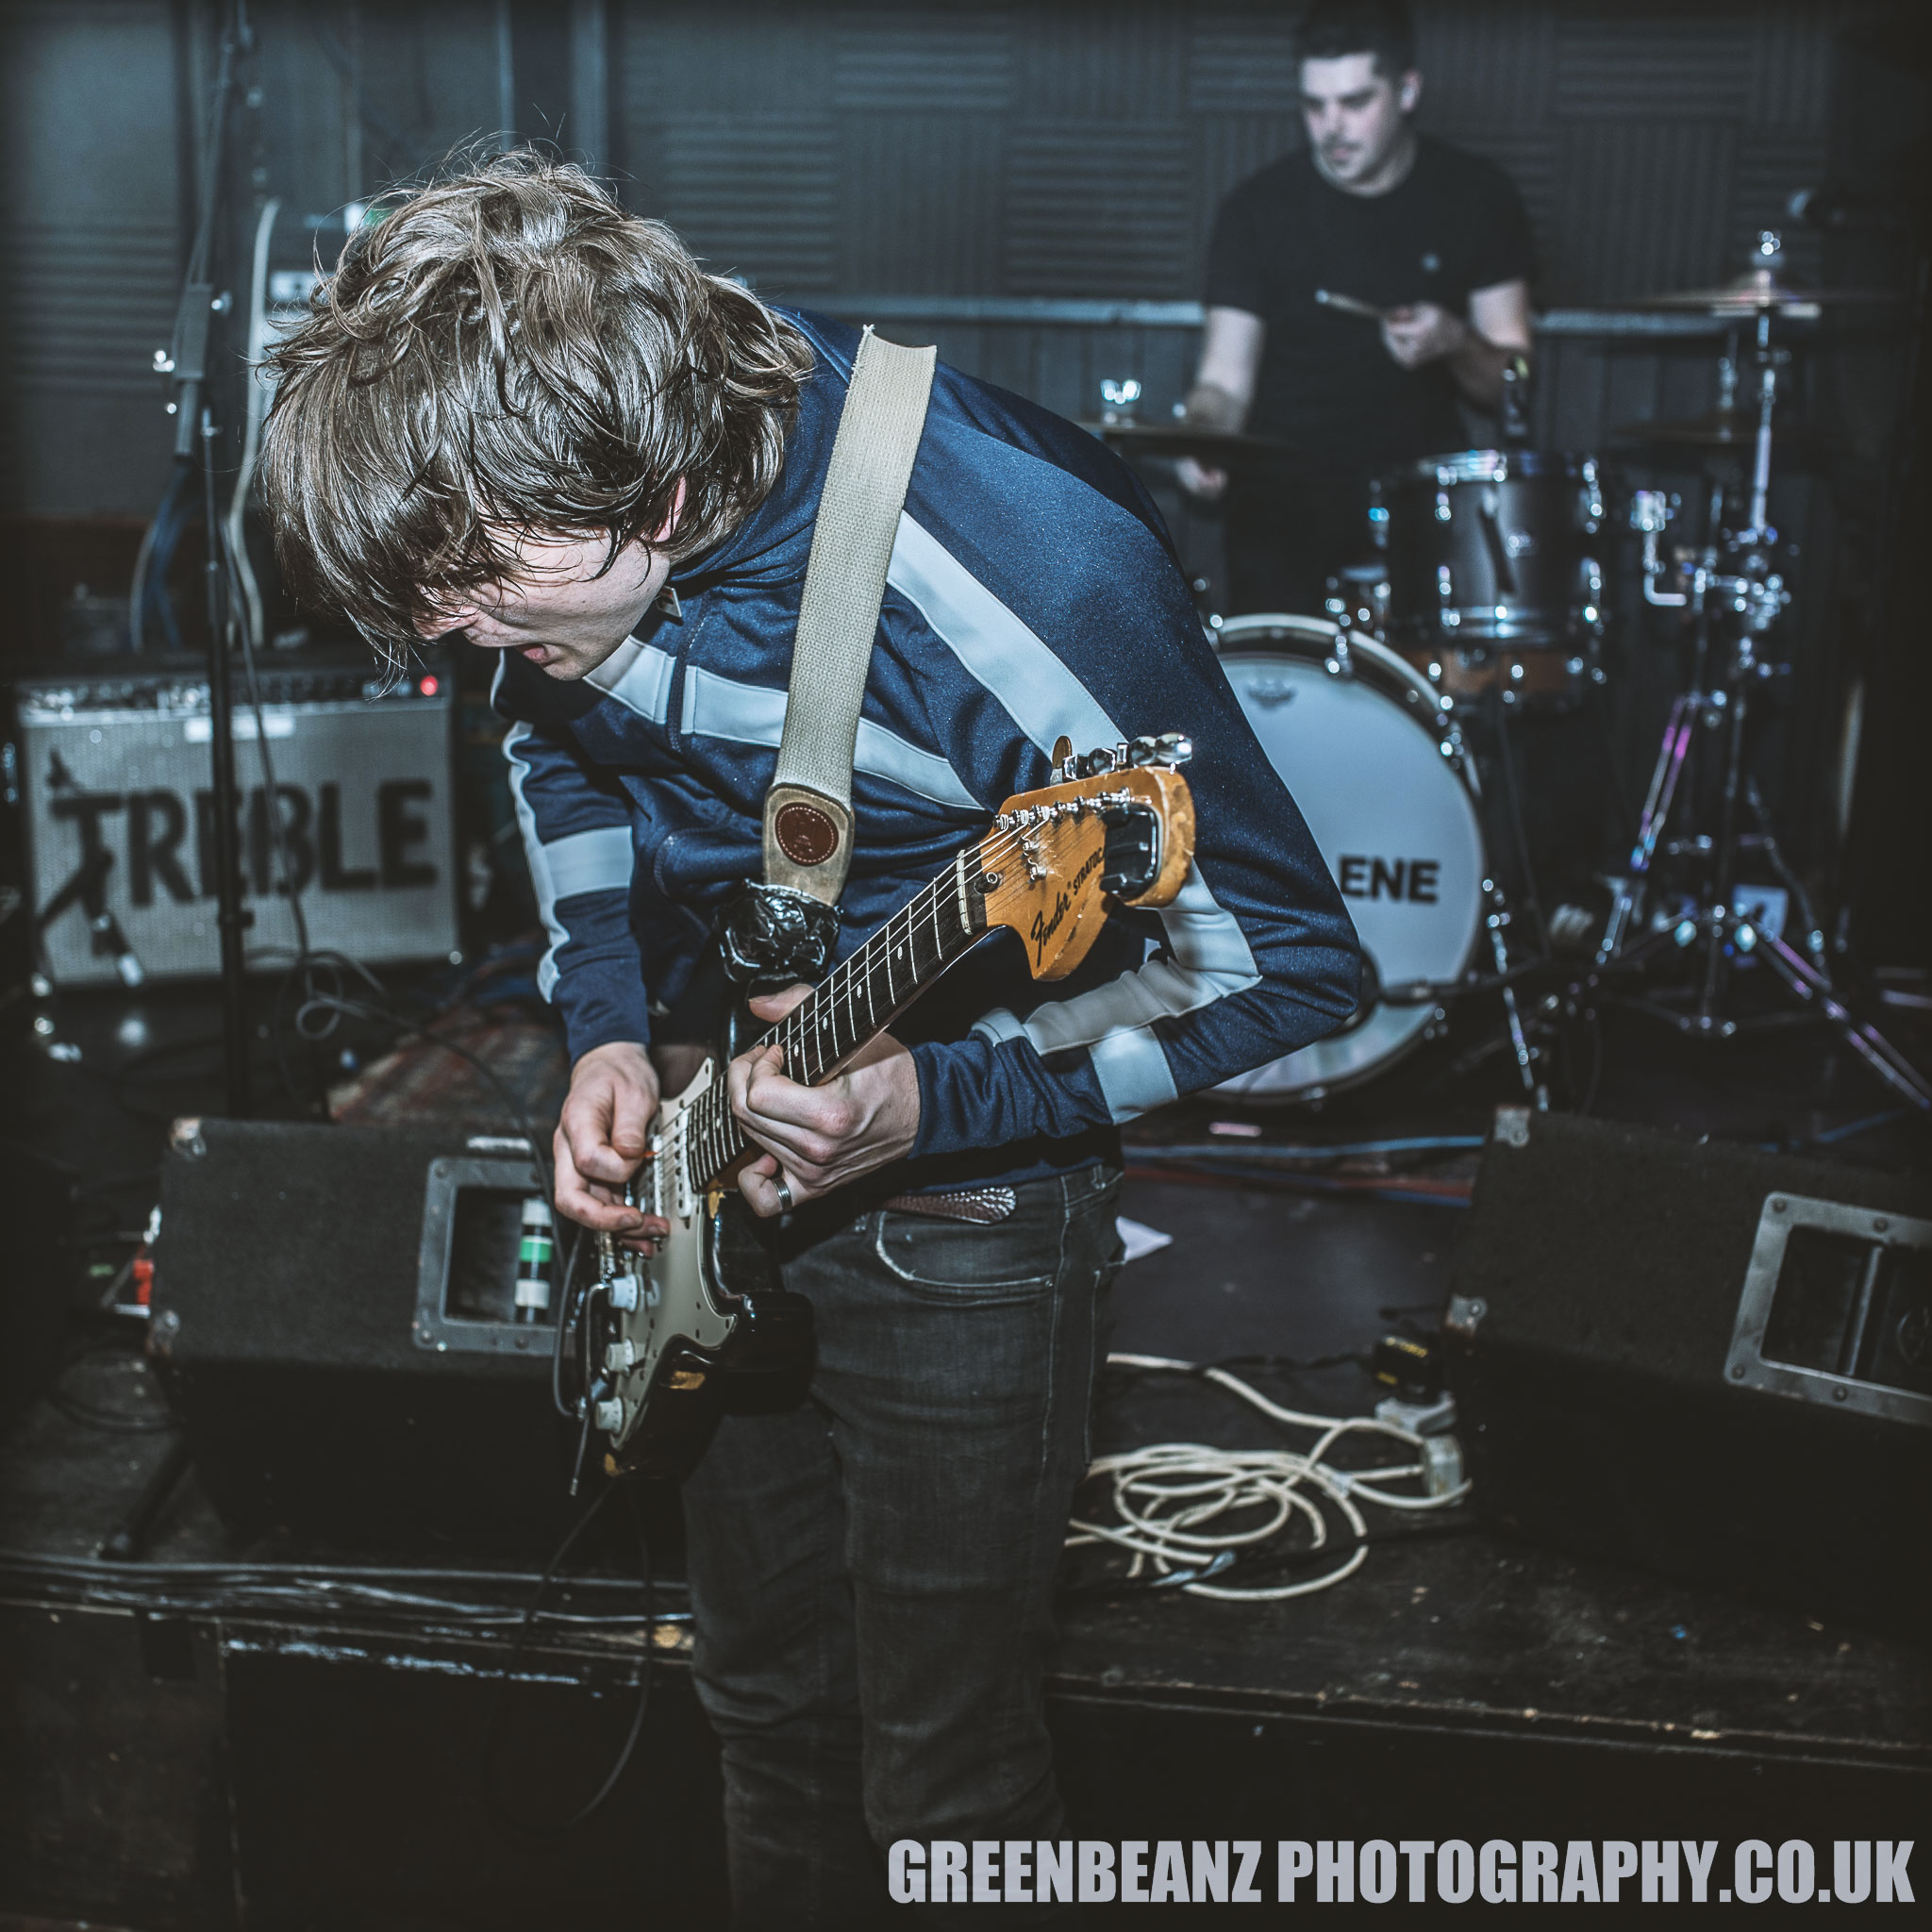 Jack Jones of Trampolene shreds in nice threads at The Junction Plymouth